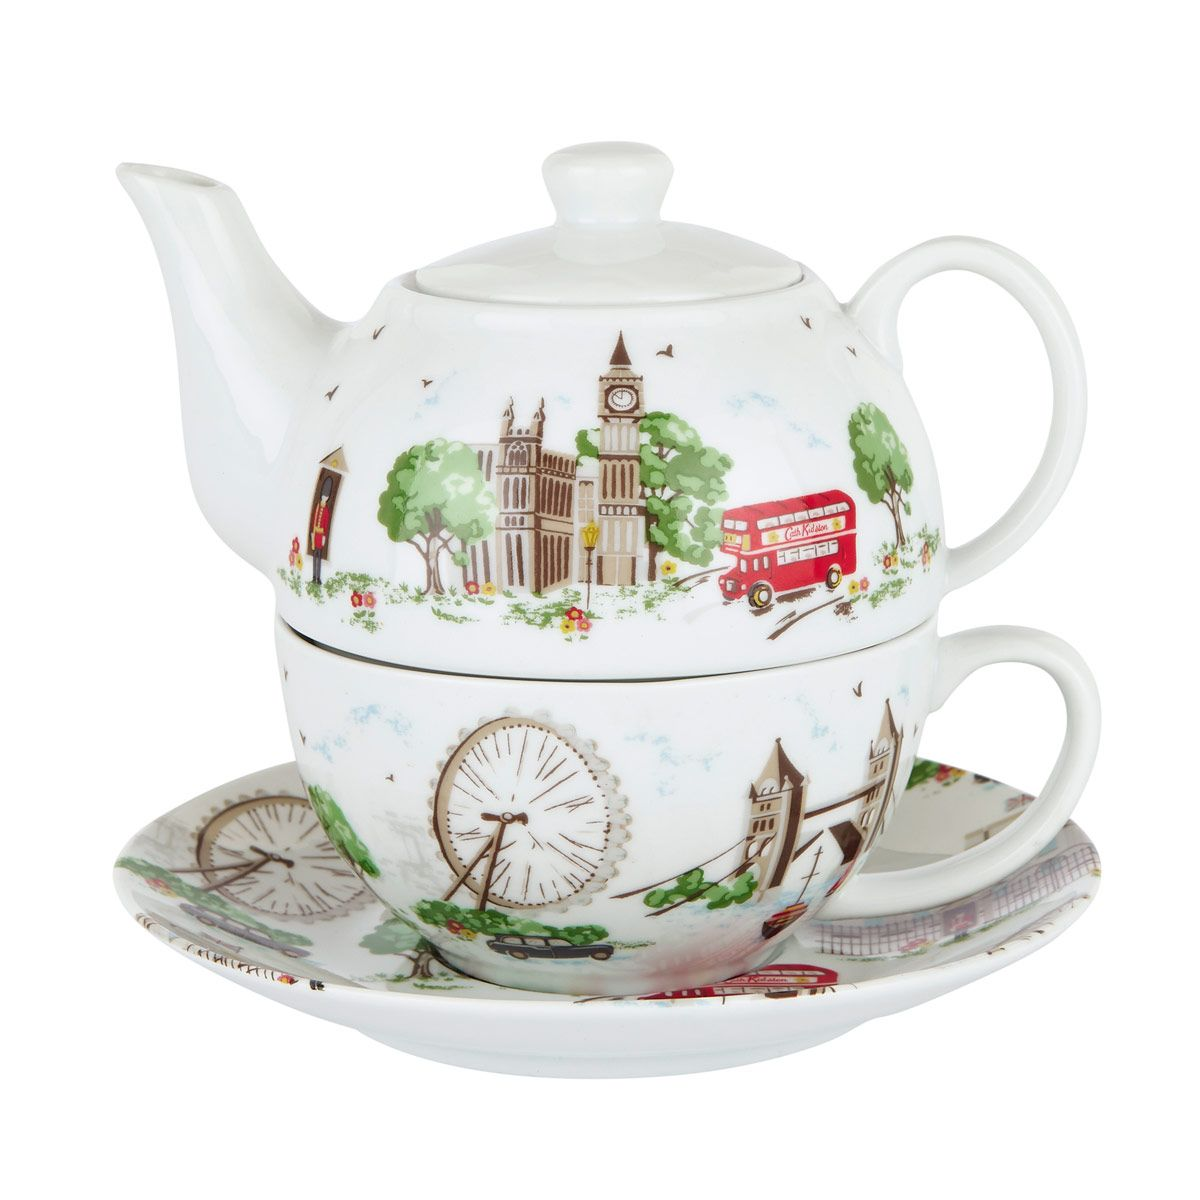 London Tea For One Set Cooking And Dining Cathkidston Tea